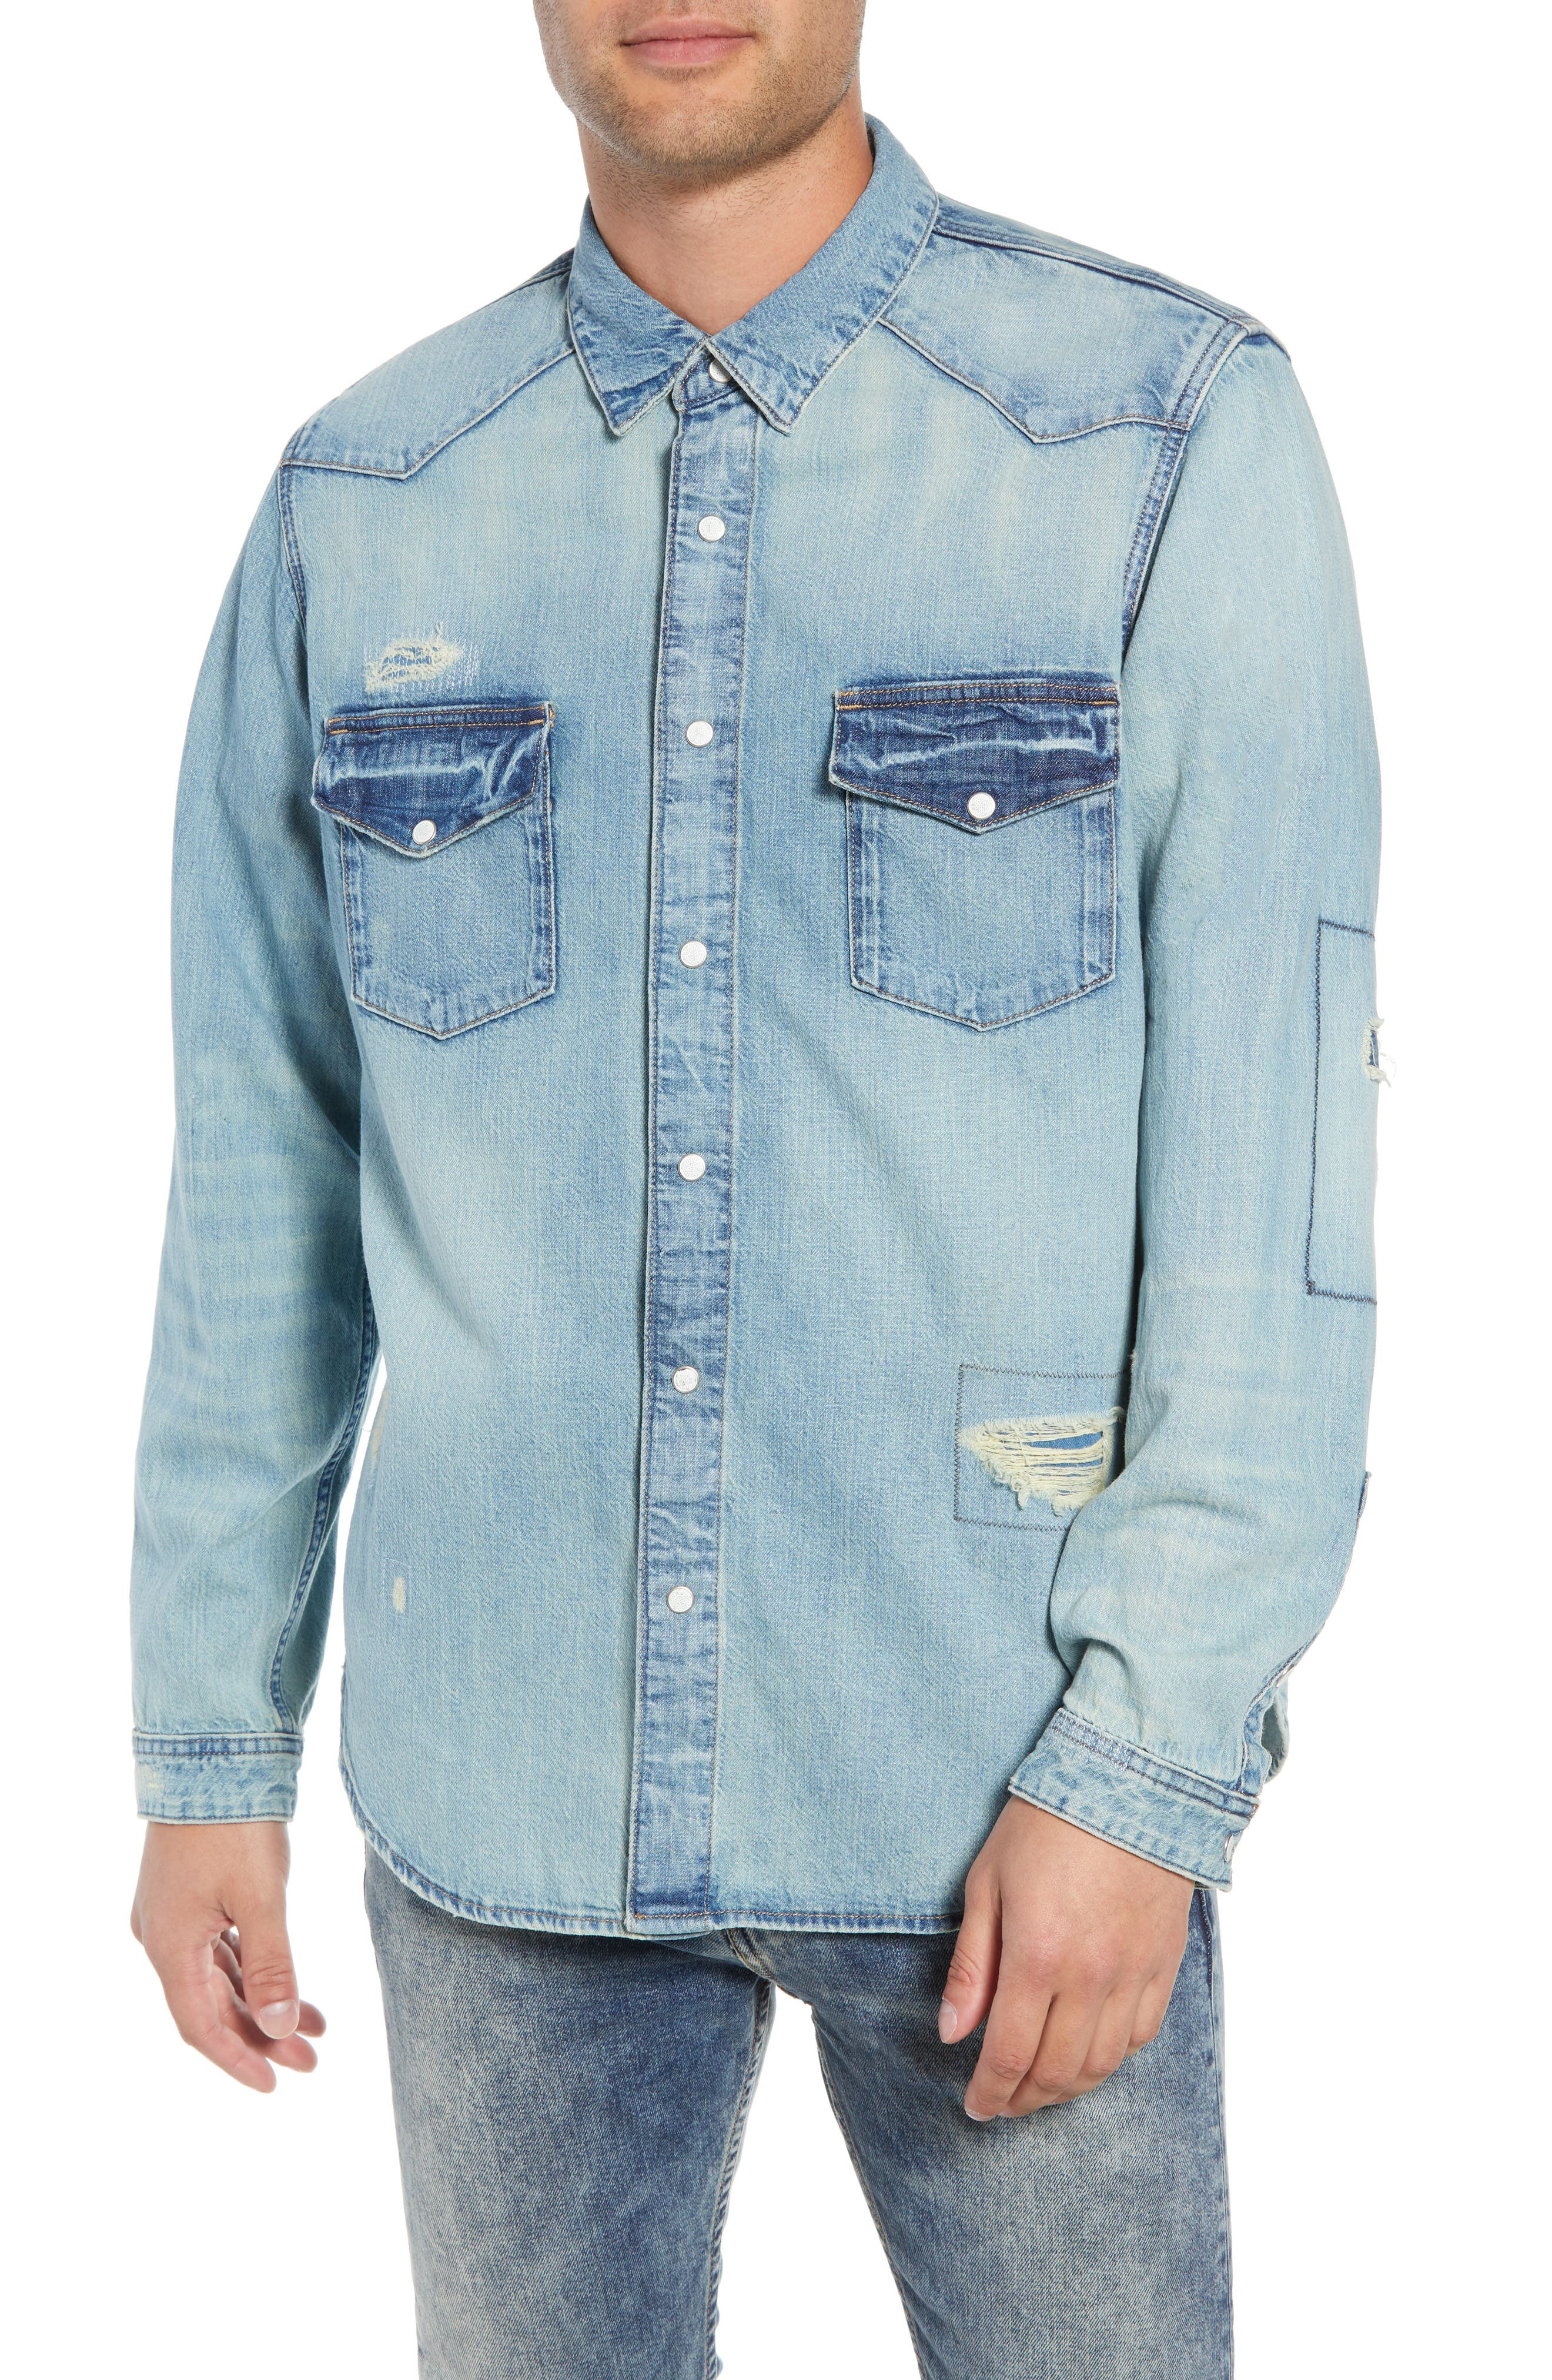 Western Denim Sport Shirt,                             Alternate thumbnail 2, color,                             450